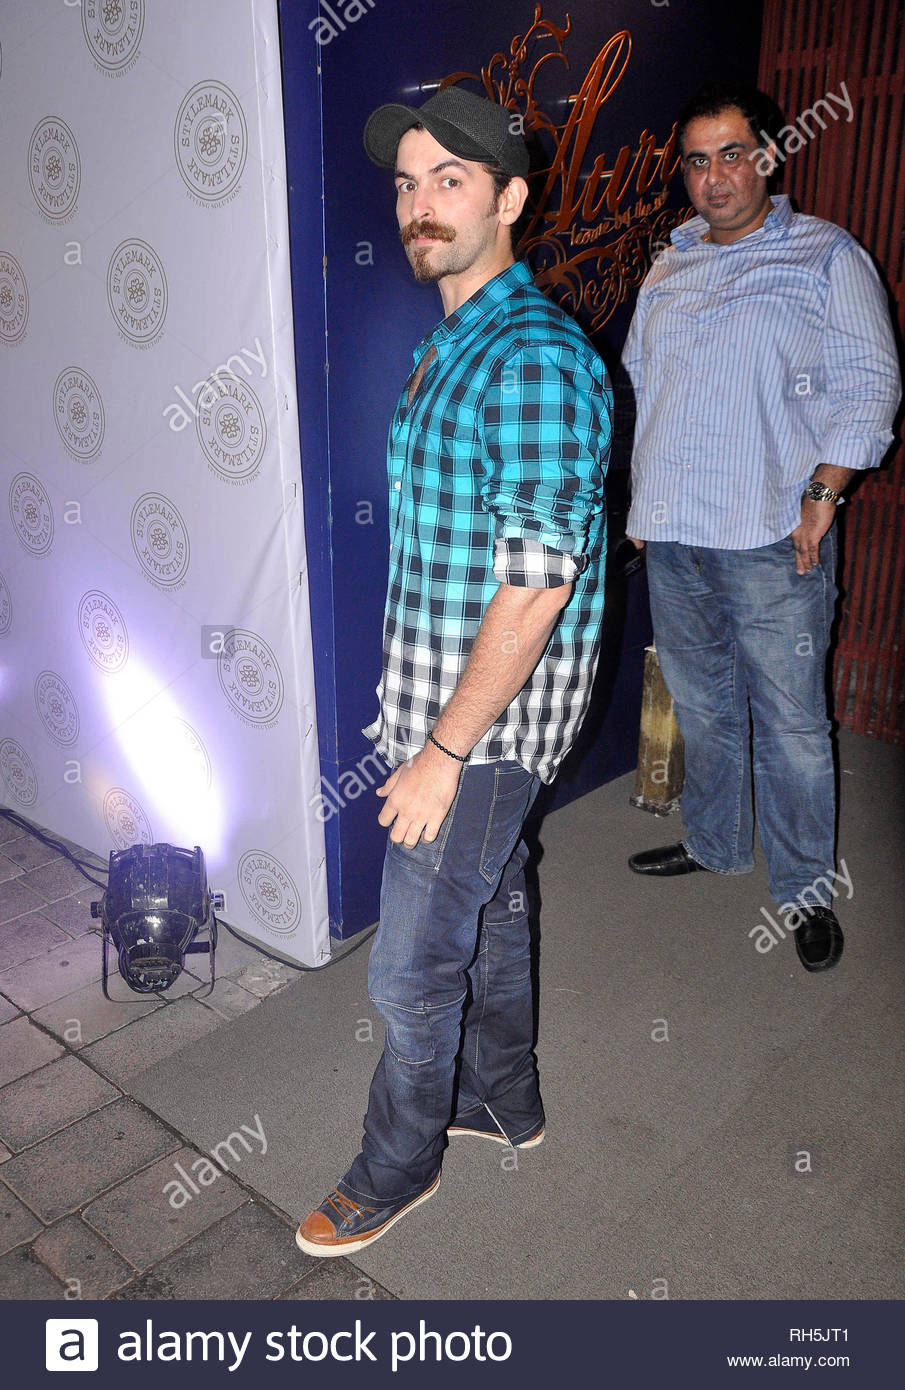 Bollywood actor Neil Nitin Mukesh arrives for the party hosted for Chris Bosh (NBA player, Miami Heat) in Mumbai, India on July 17, 2013. (Deven Lad) - Stock Image